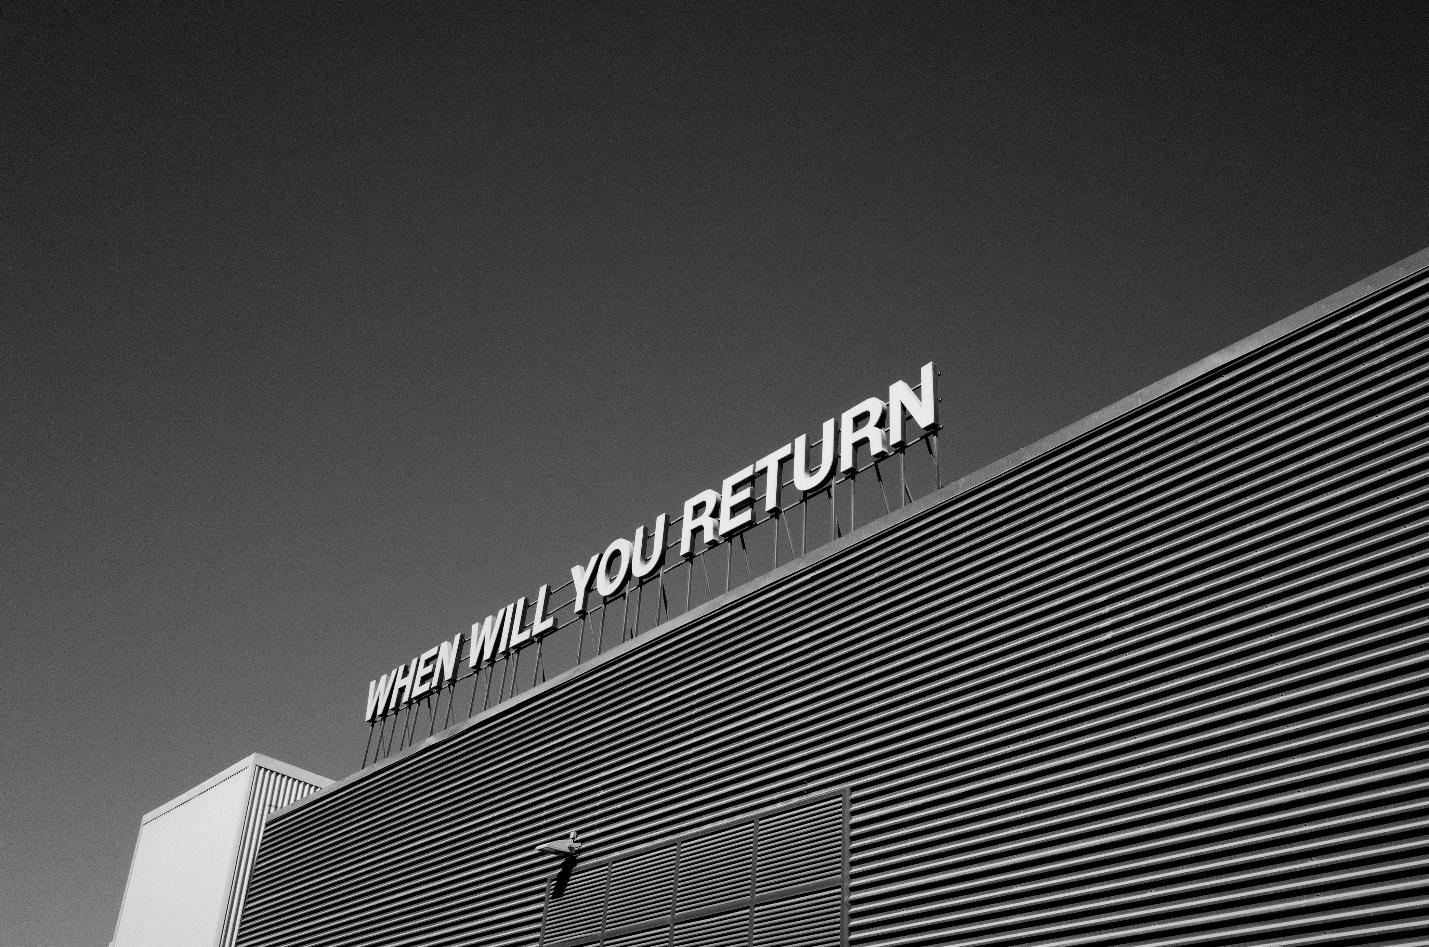 company billboard asks when its customers will return